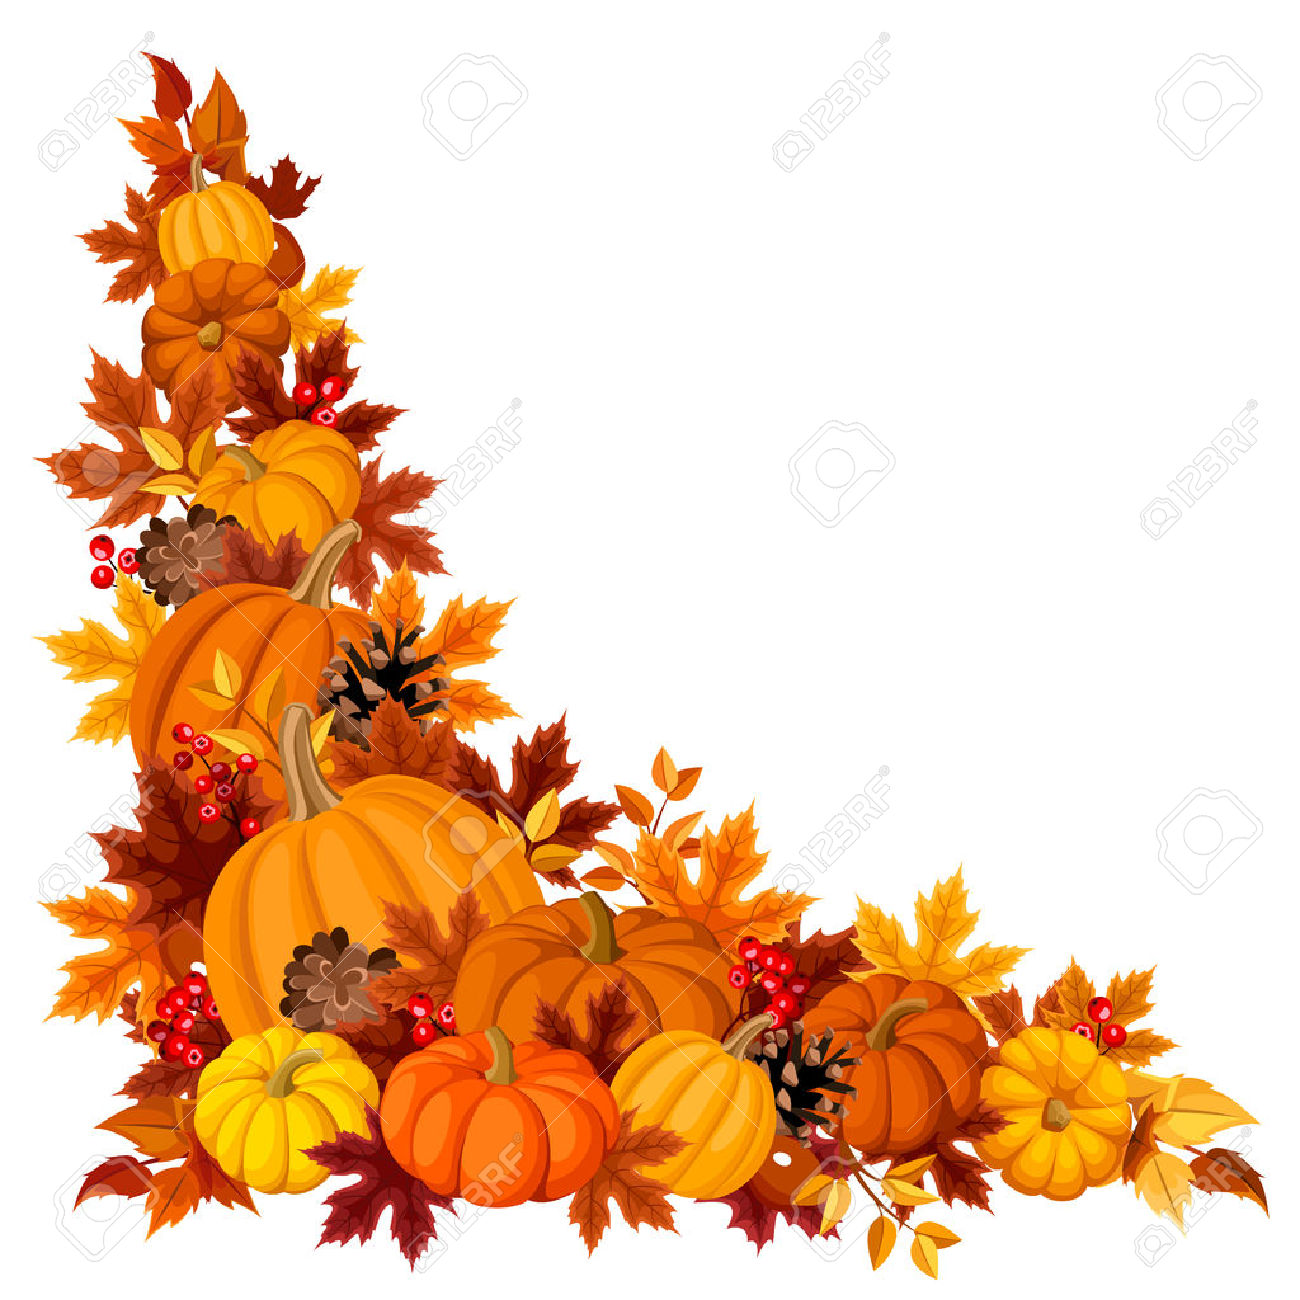 Thanksgiving clipart flowers svg freeuse library Autumn Flowers Clipart | Free download best Autumn Flowers ... svg freeuse library